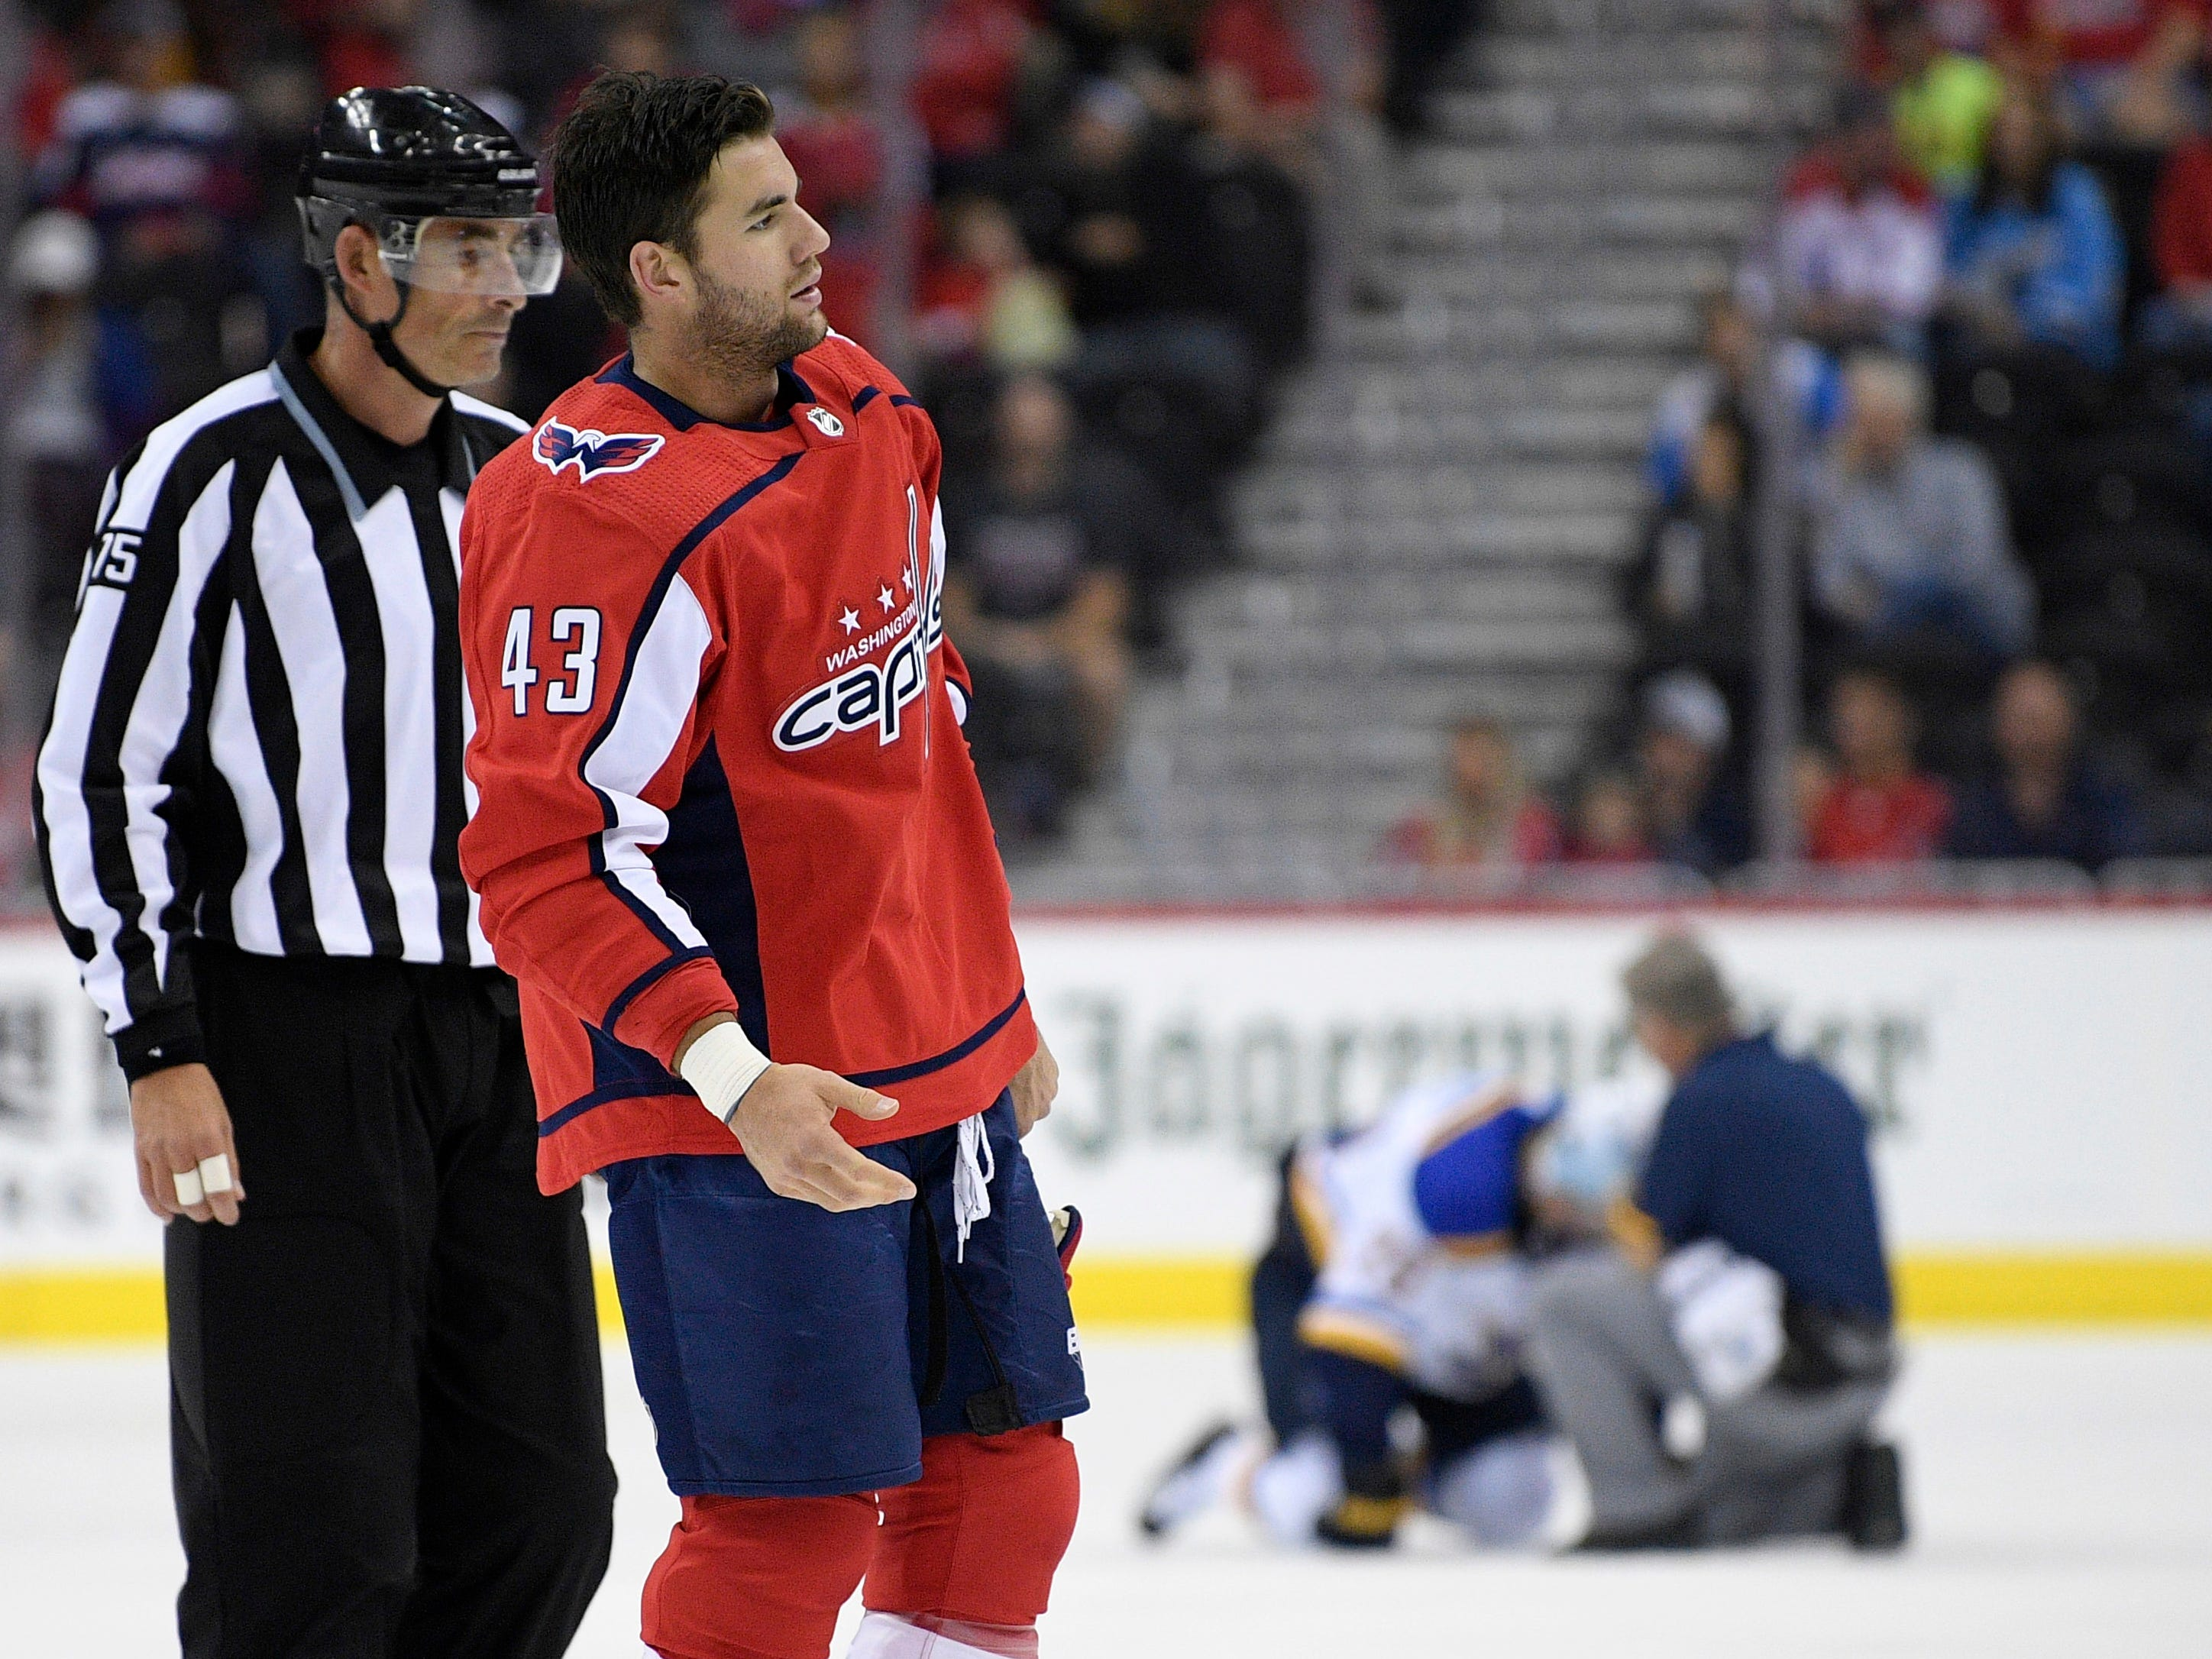 Oct. 3: Washington Capitals right wing Tom Wilson was suspended for 20 games for a hit to the head of St. Louis Blues forward Oskar Sundqvist. Lost pay: $1,260,162.60.